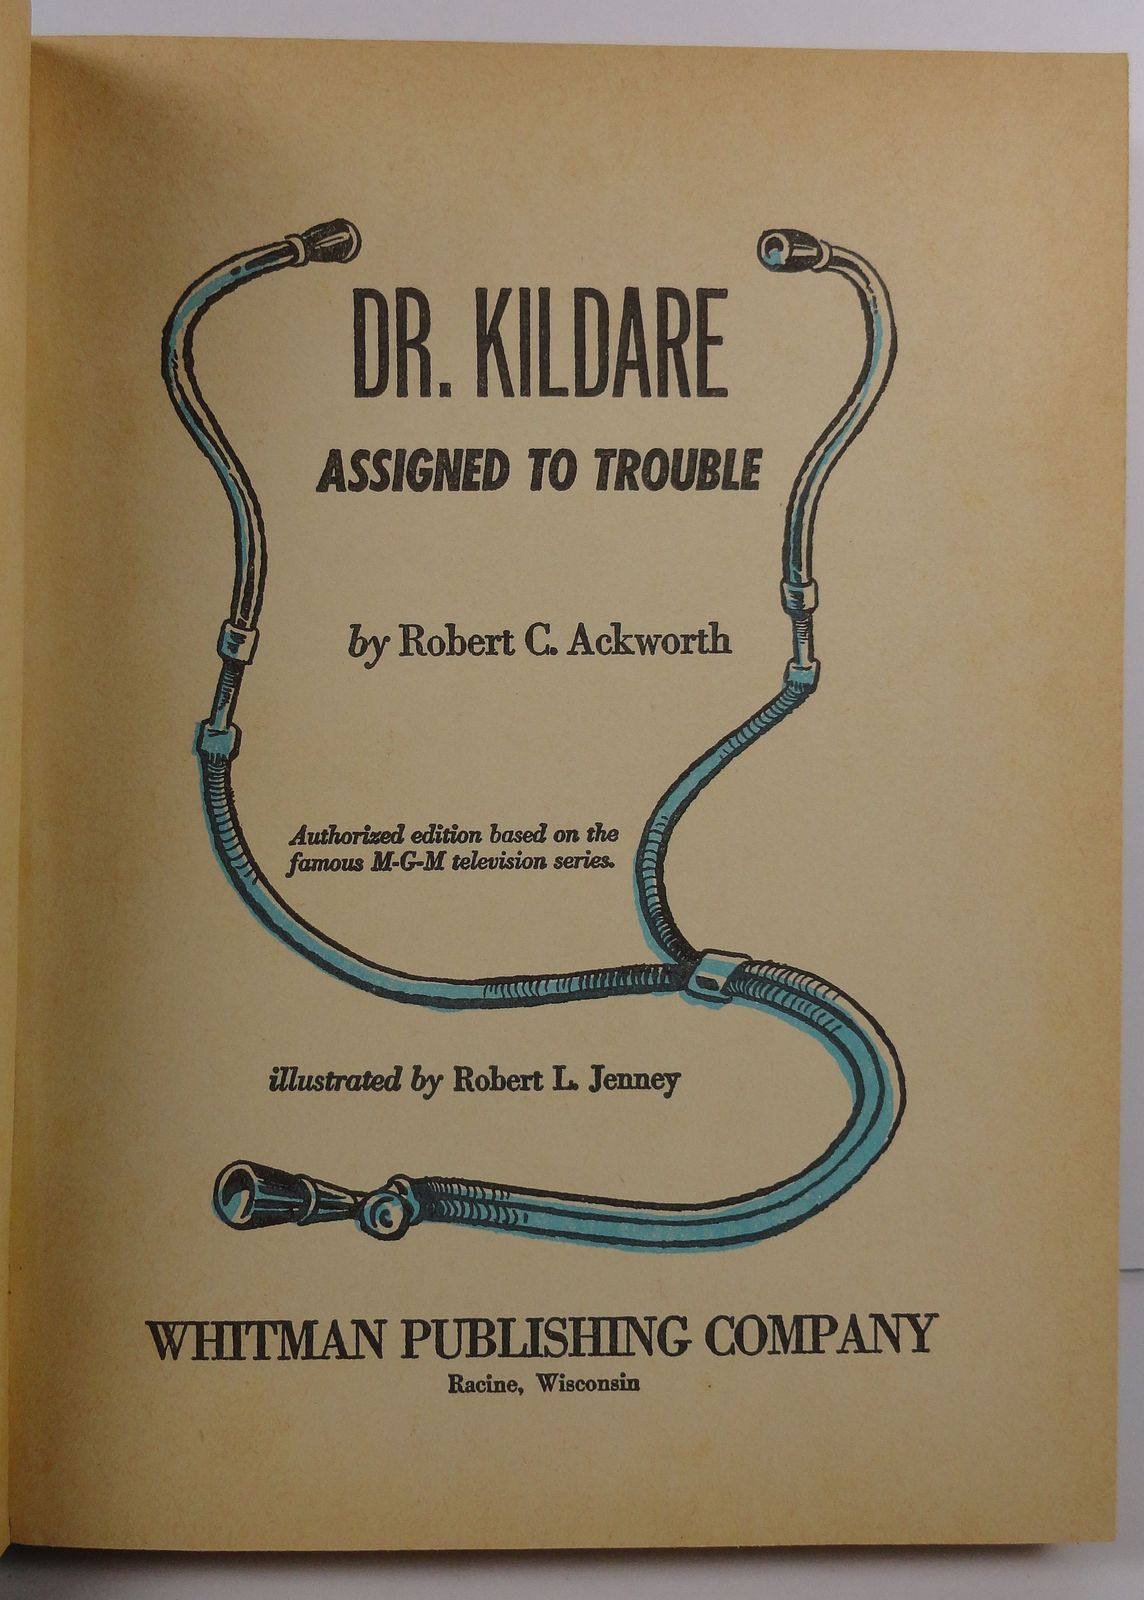 Dr. Kildare Assigned to Trouble by Robert C. Ackworth 1963